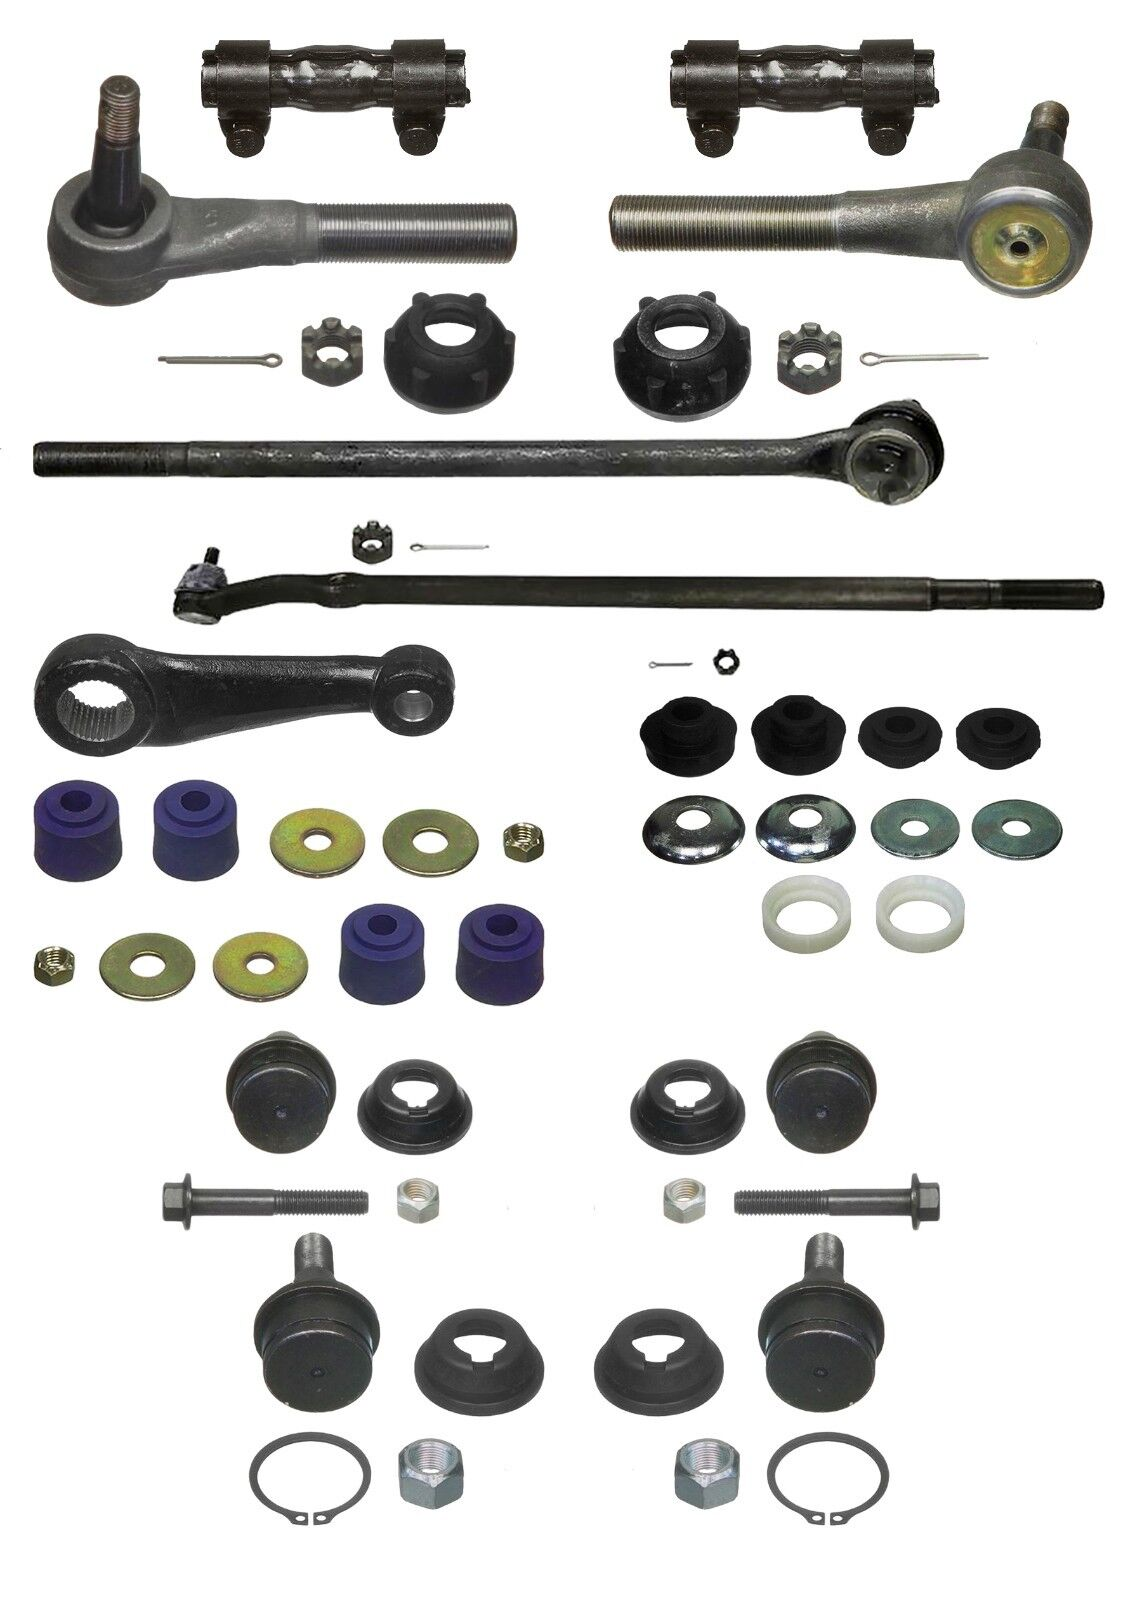 14 Piece HD Steering Kit fits Ford F-350 with 4200 lb GVW Front Axle 1987-97 2WD